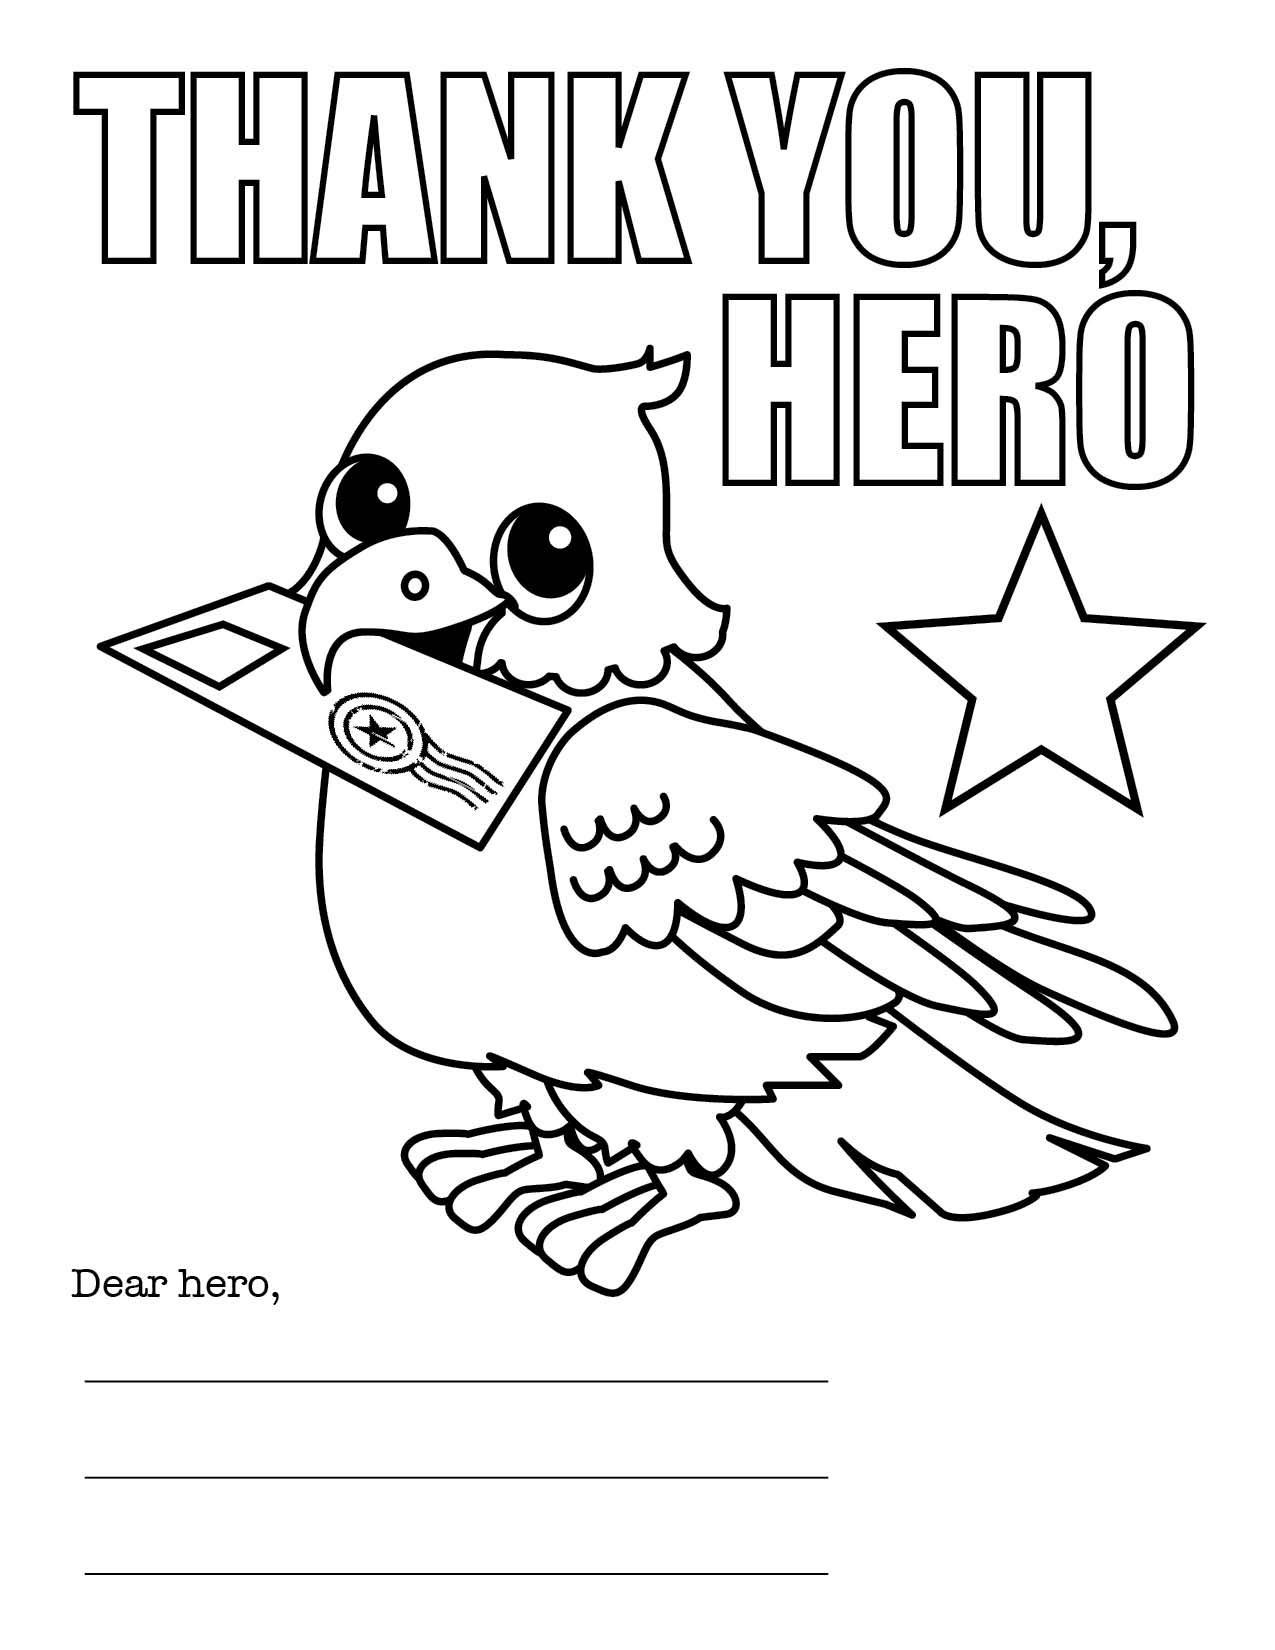 Good Veterans Day Drawings Coloring Pages Inspirational